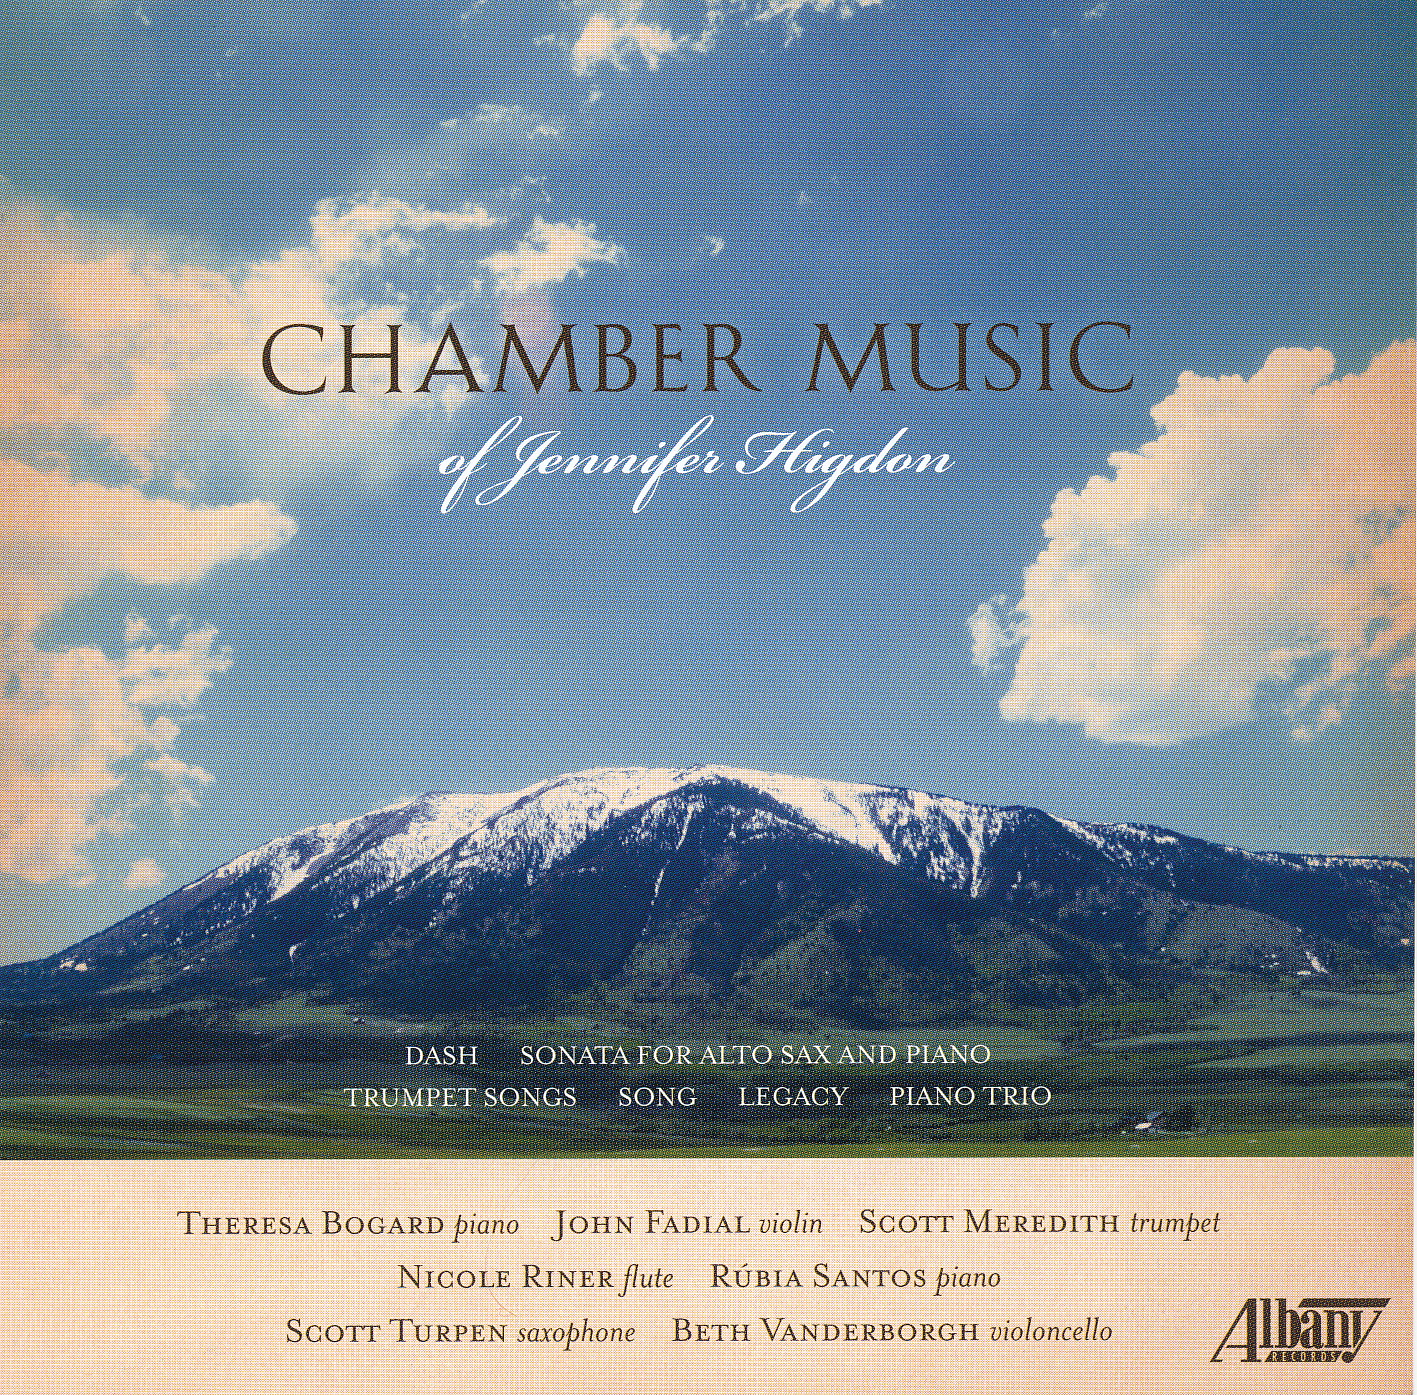 Chamber Music by Jennifer Higdon Chamber Classical Albany Records